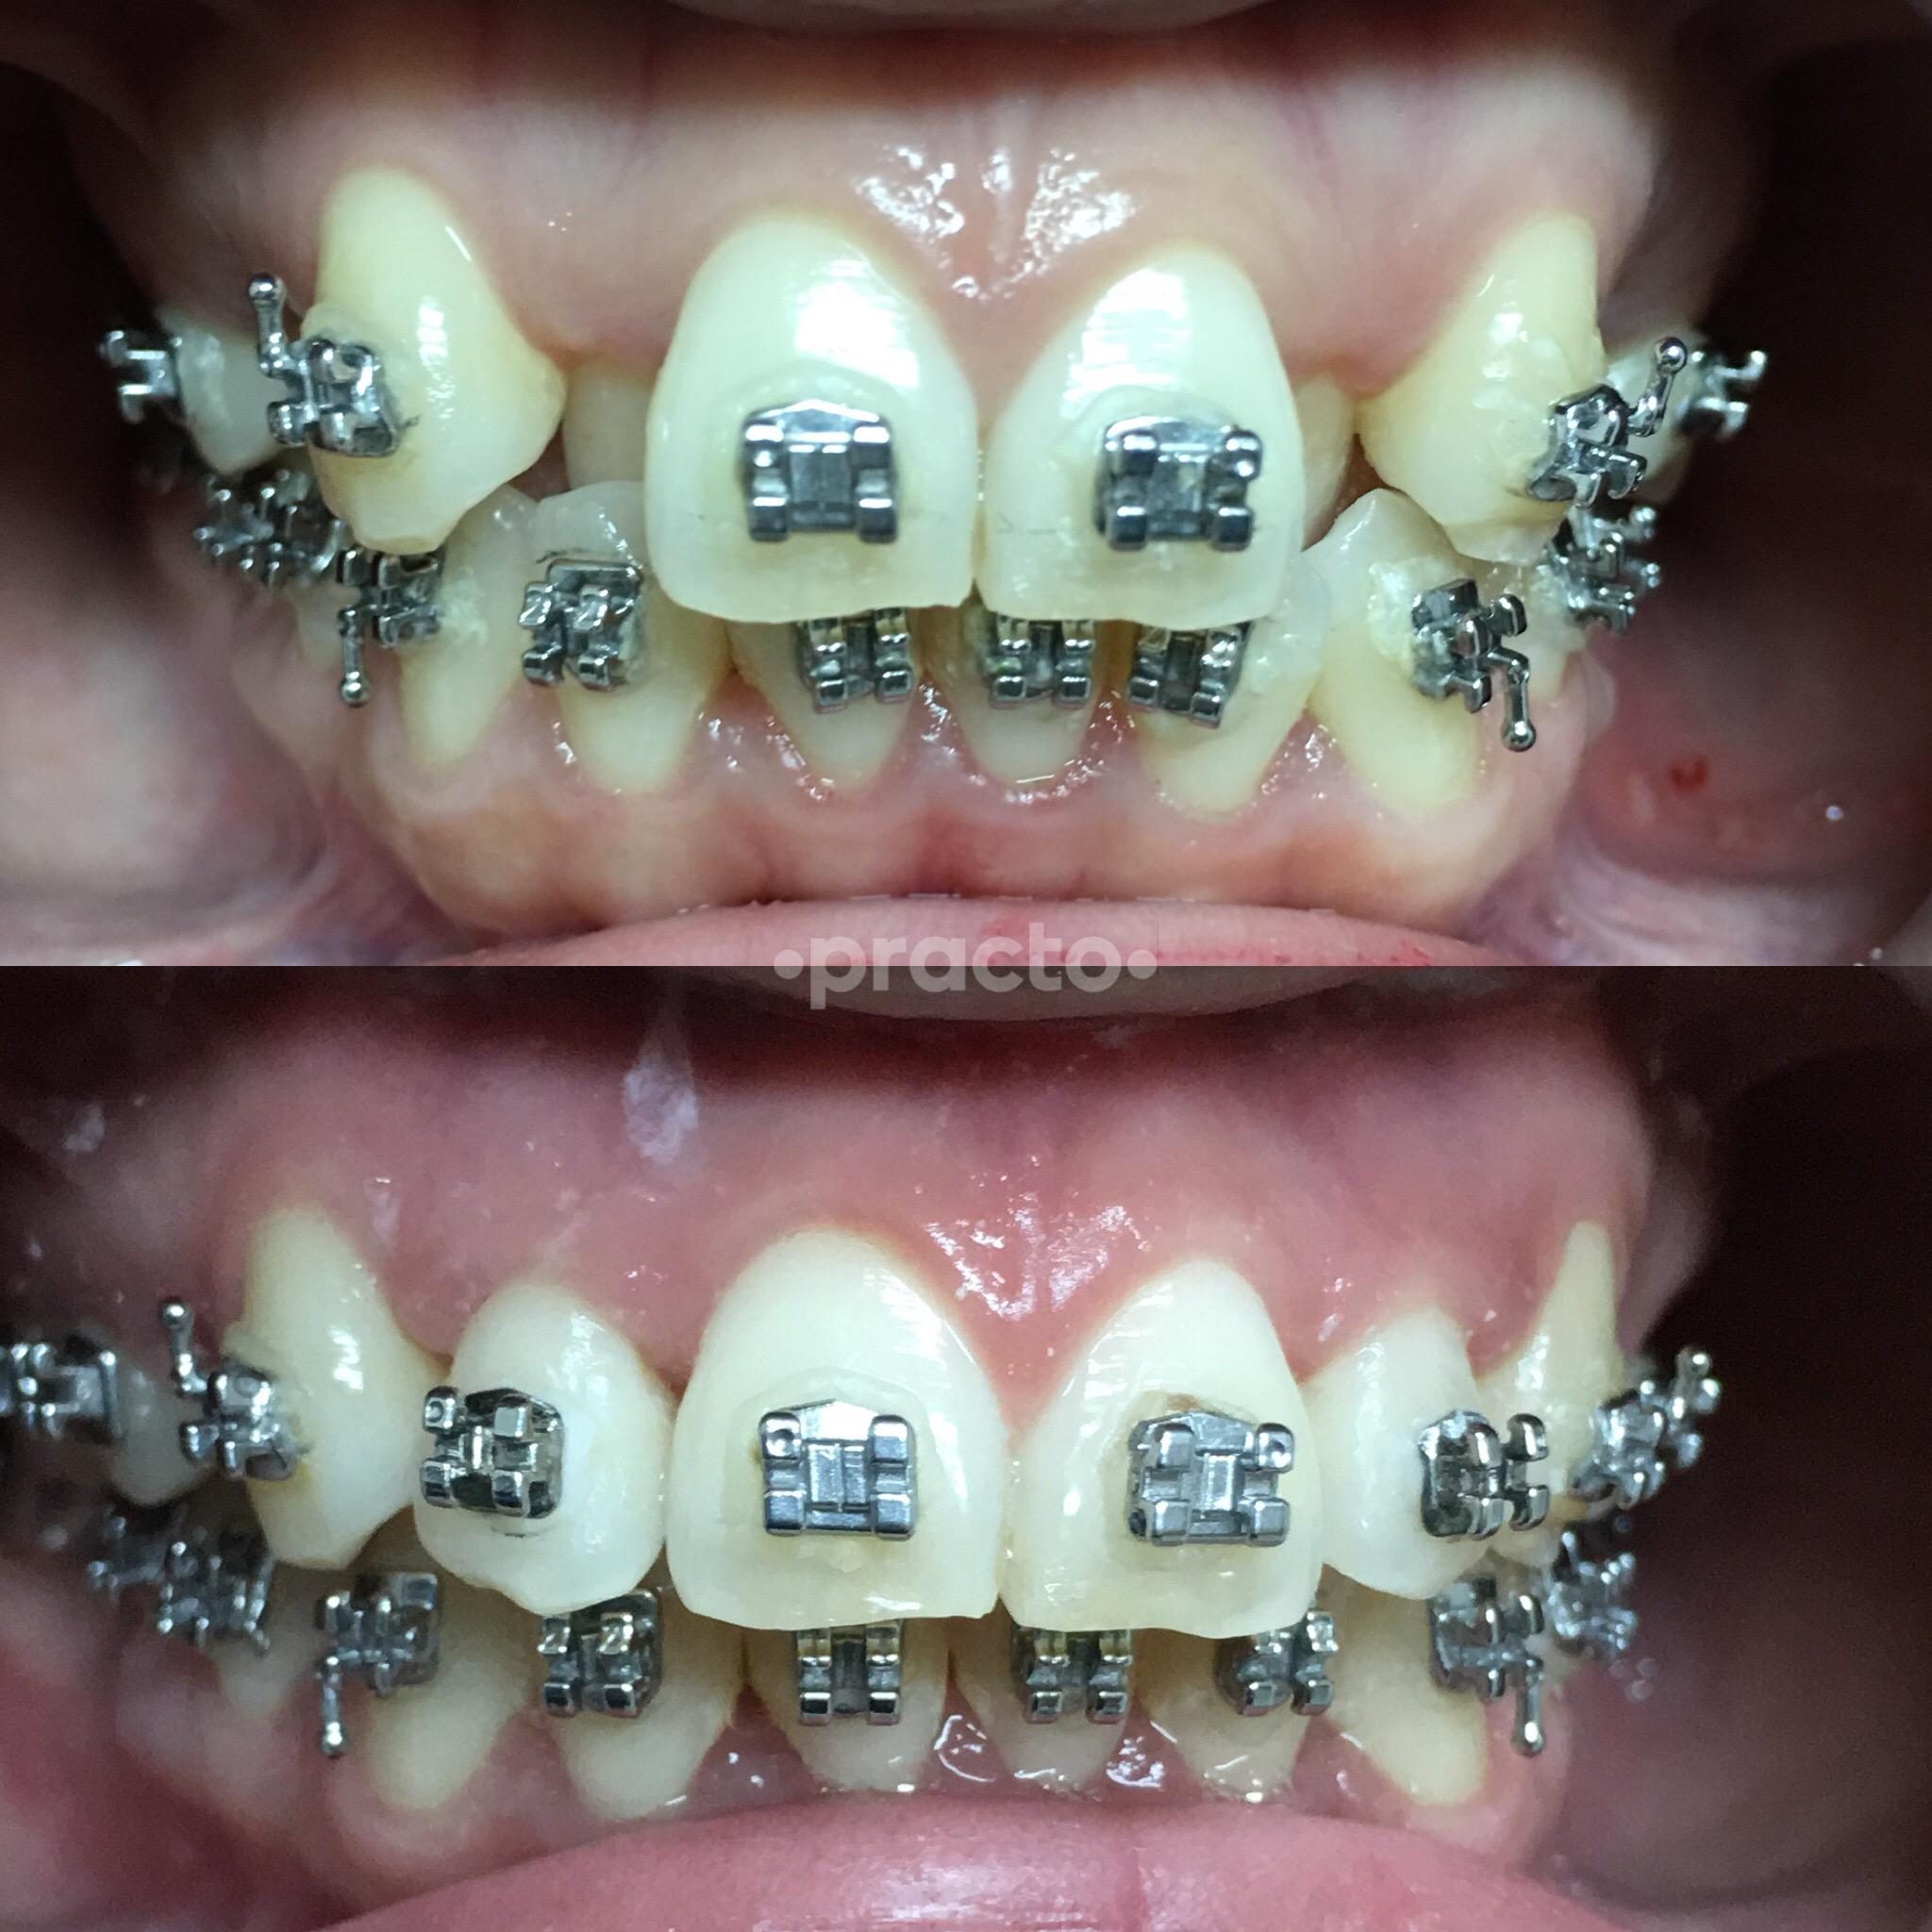 Best Dental Clinics in Jakarta - Book Appointment, View Reviews